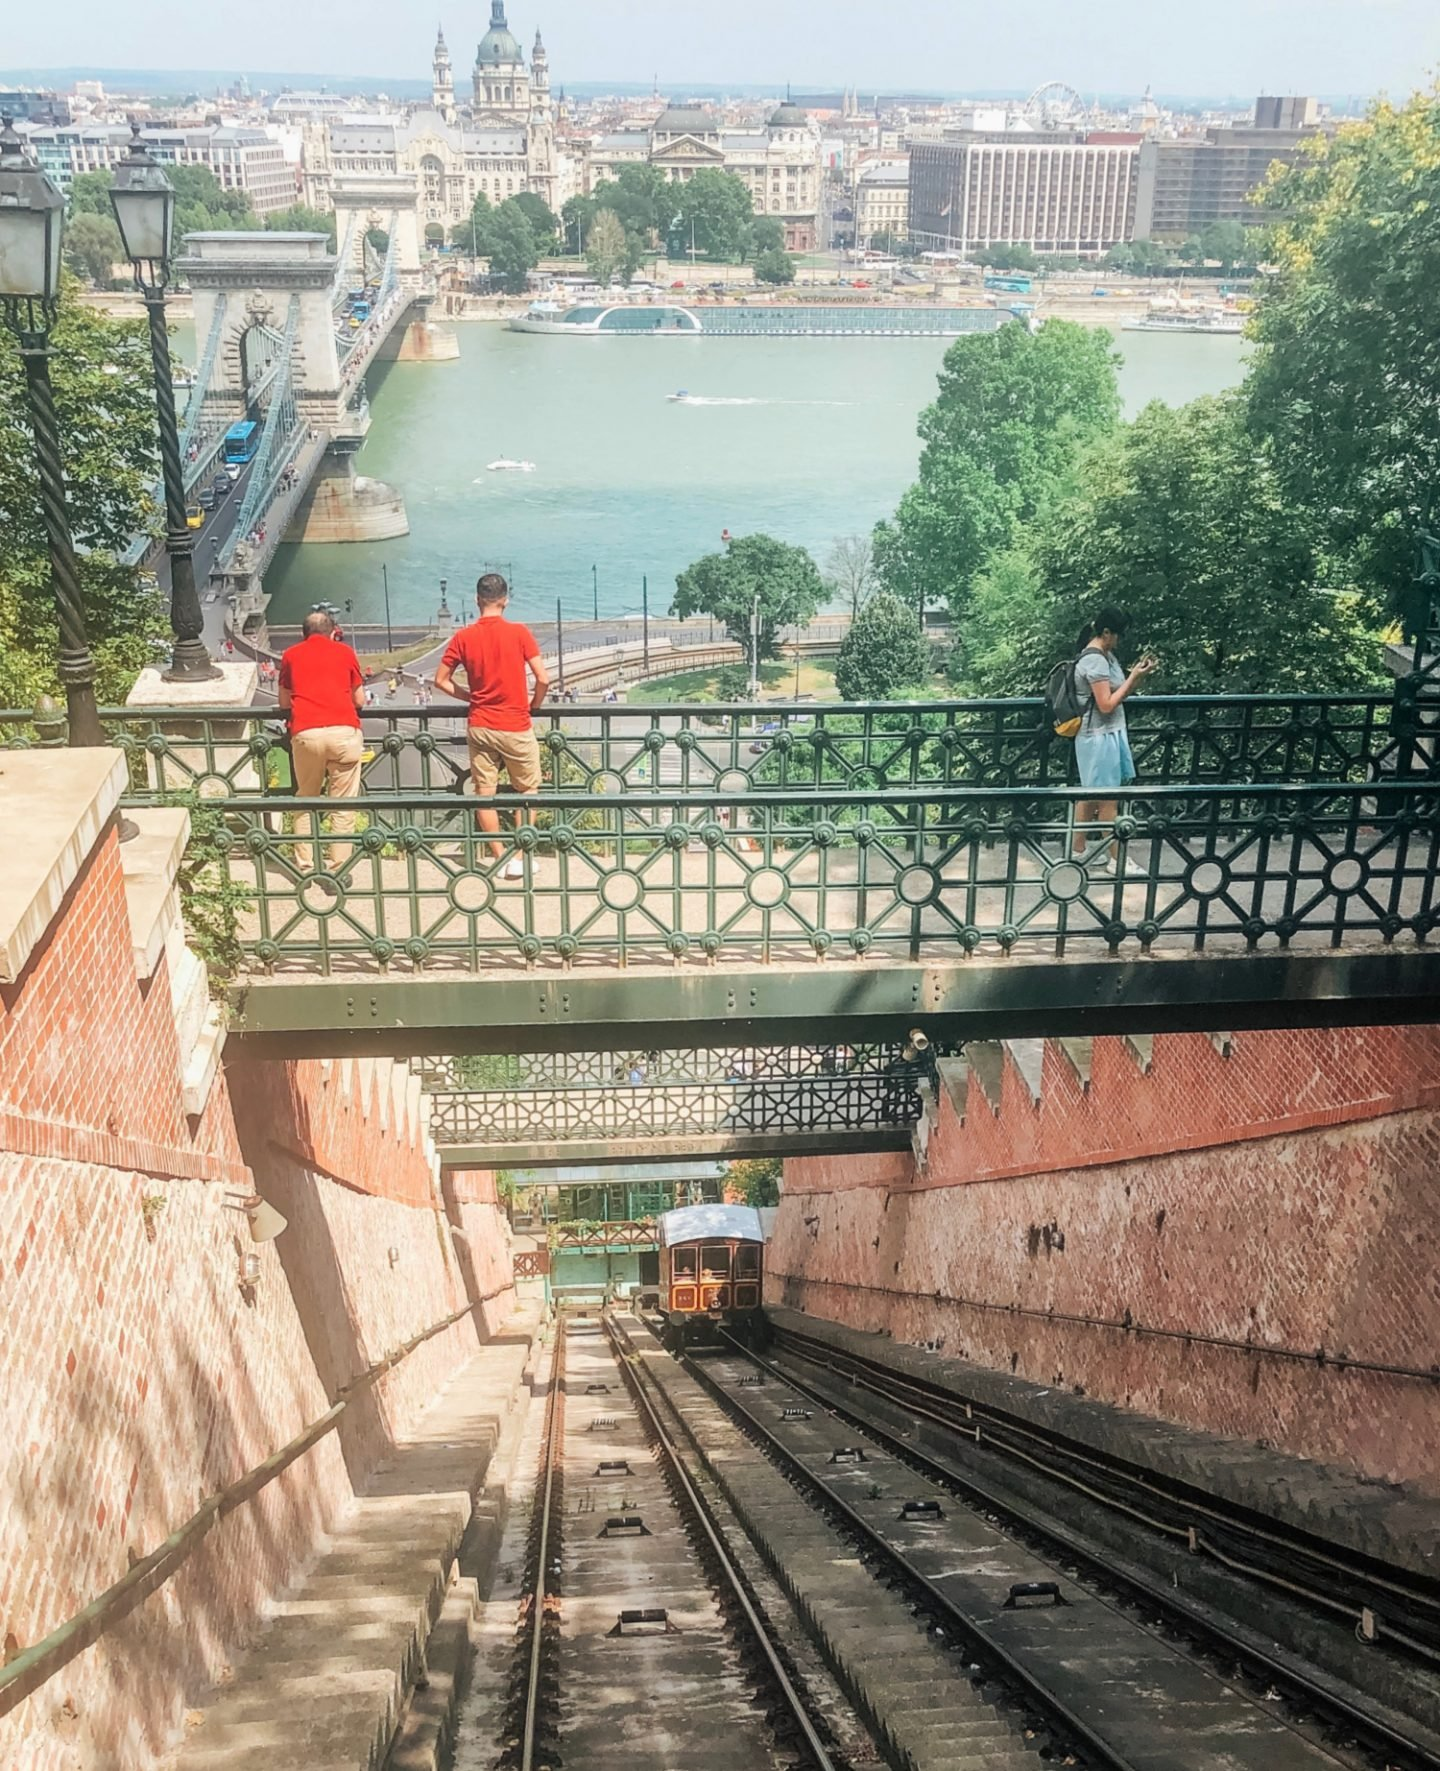 The funicular at Buda castle